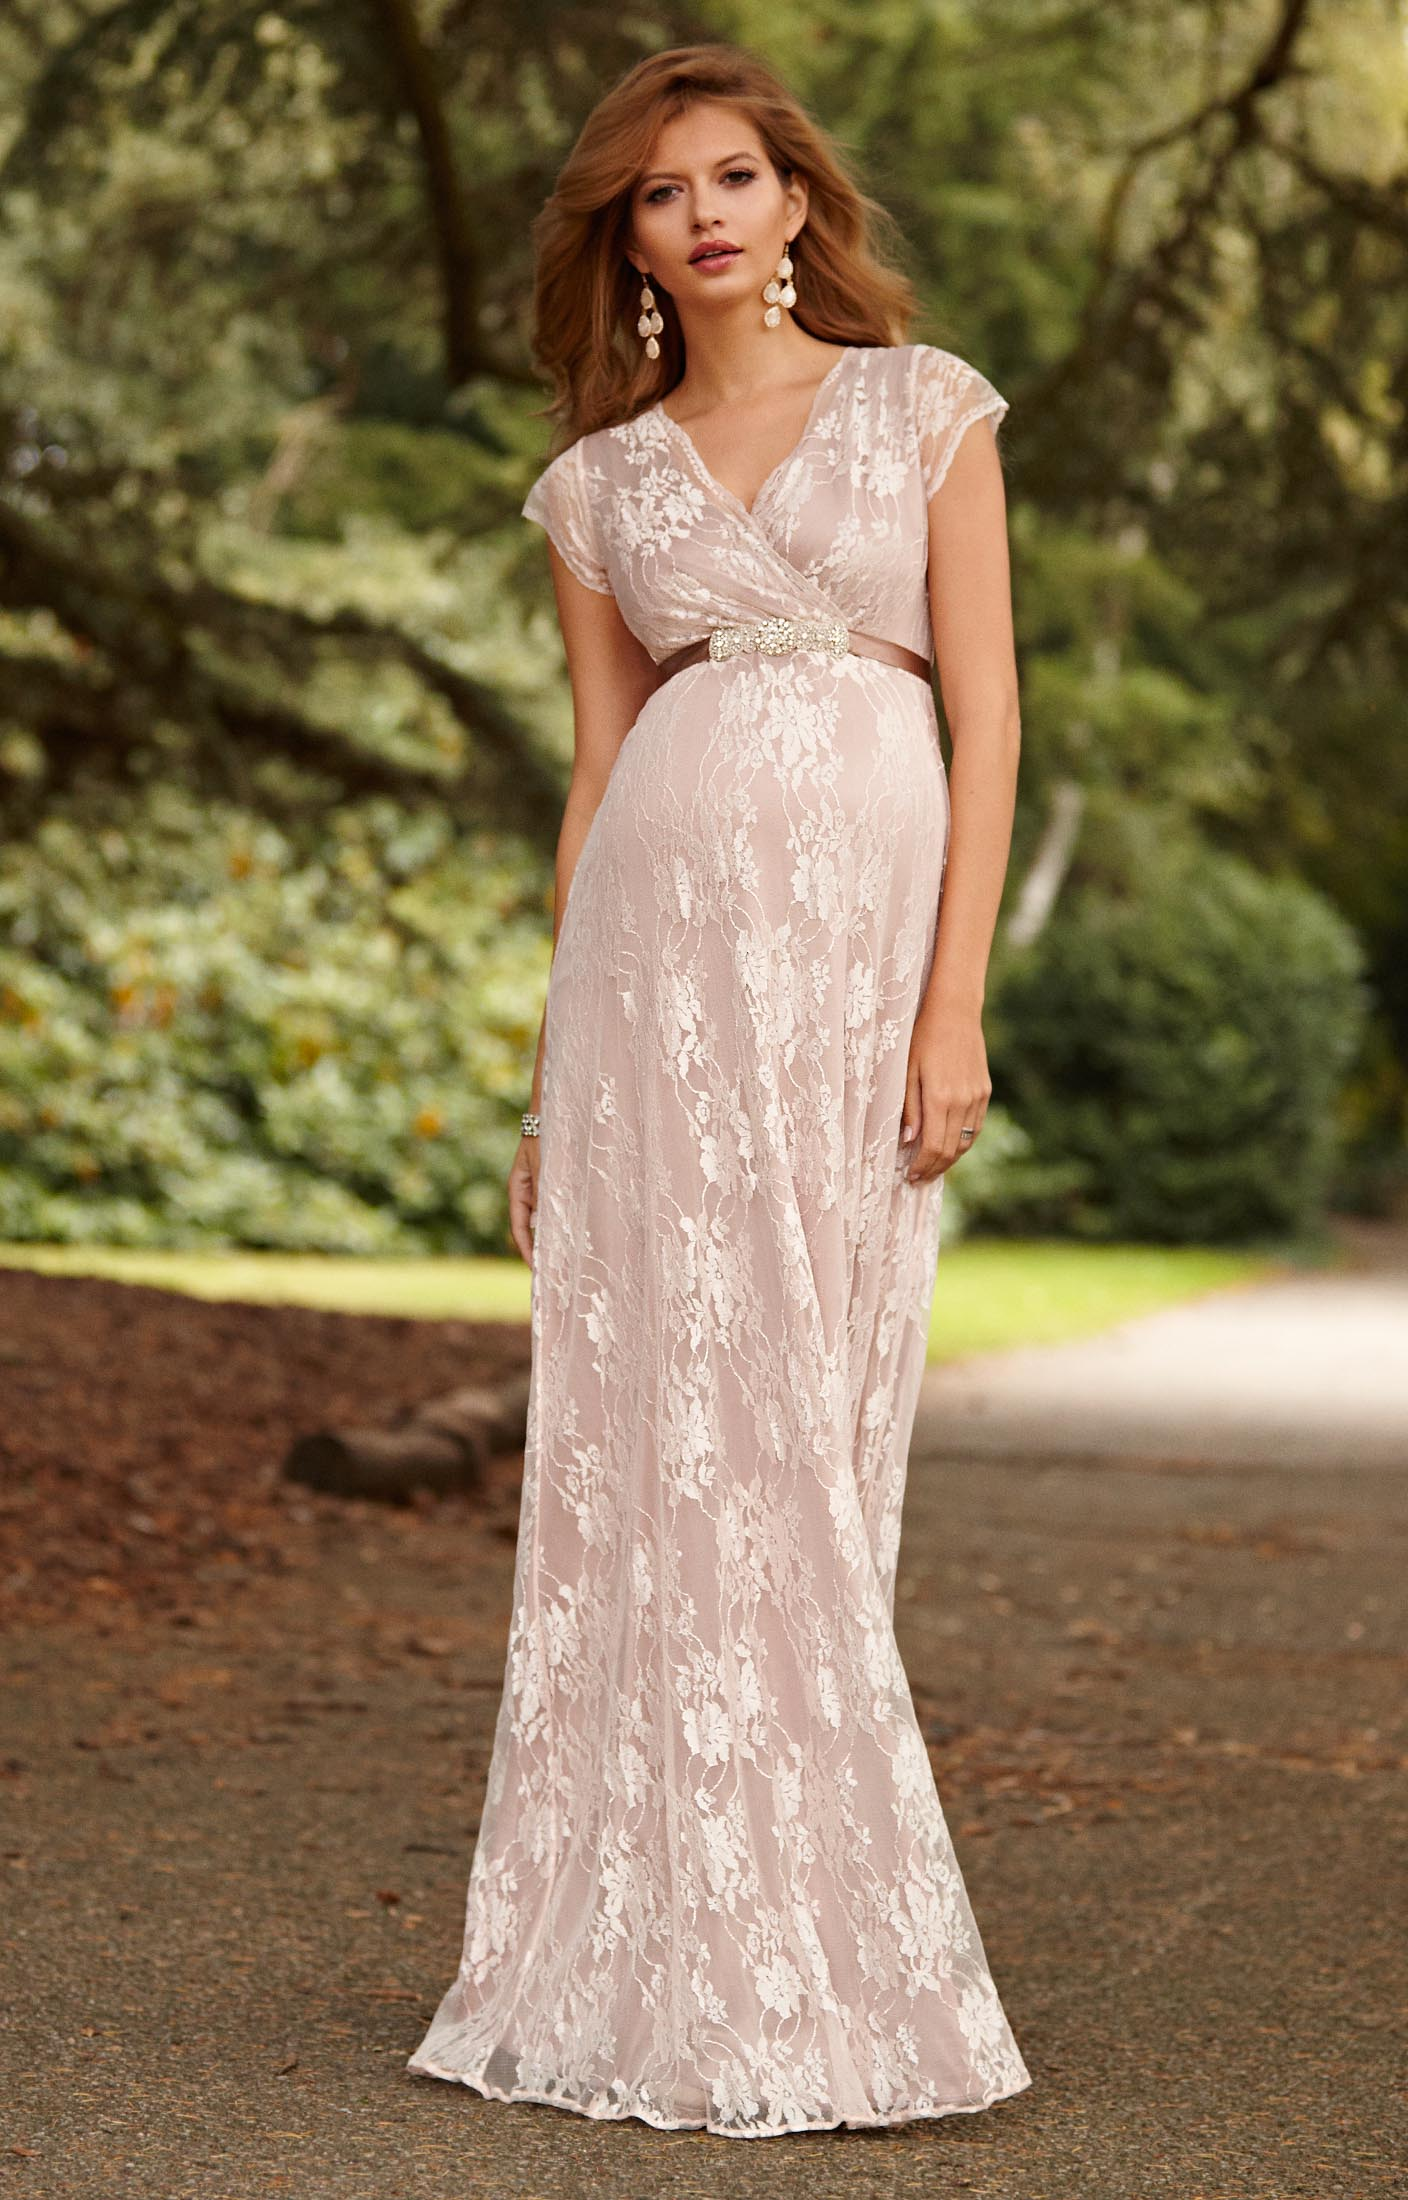 Eden maternity gown long blush maternity wedding dresses eden maternity gown long blush by tiffany rose ombrellifo Image collections